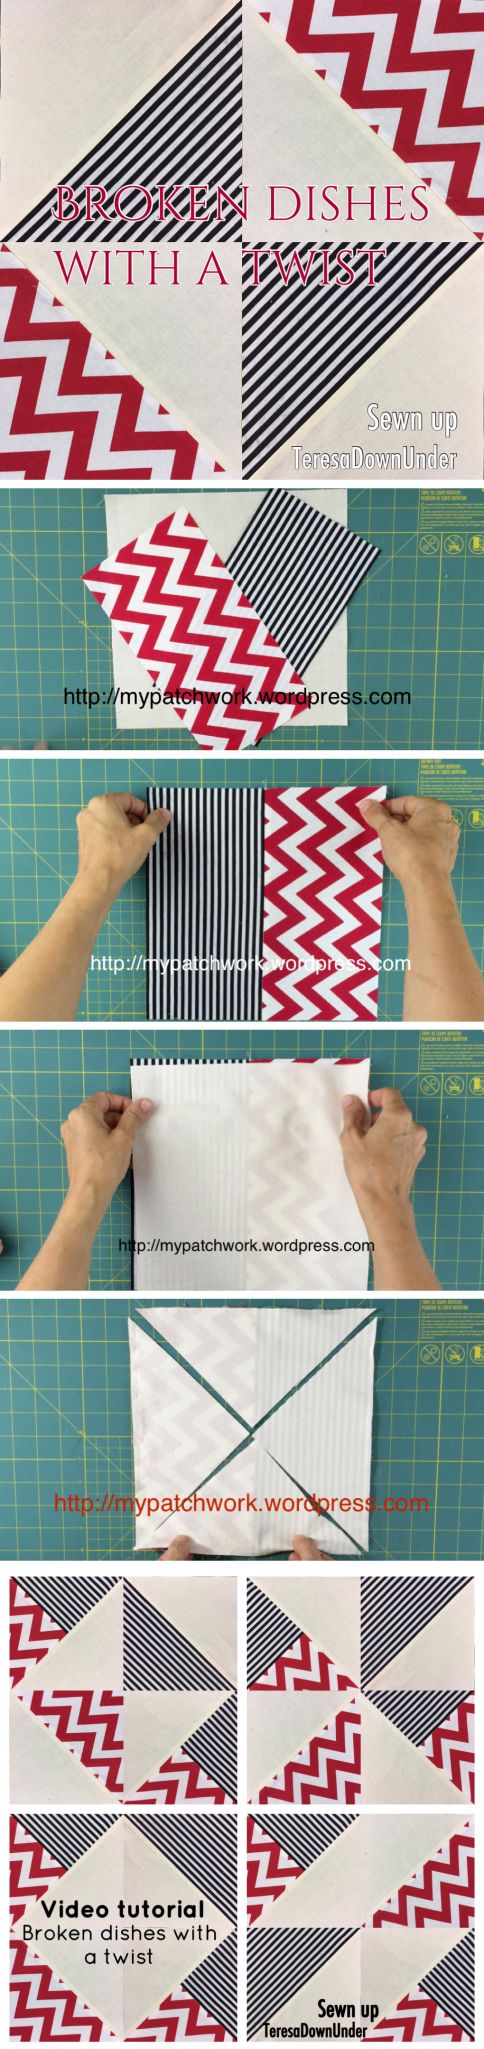 Video tutorial: Broken dishes with a twist - quick and easy quilt block